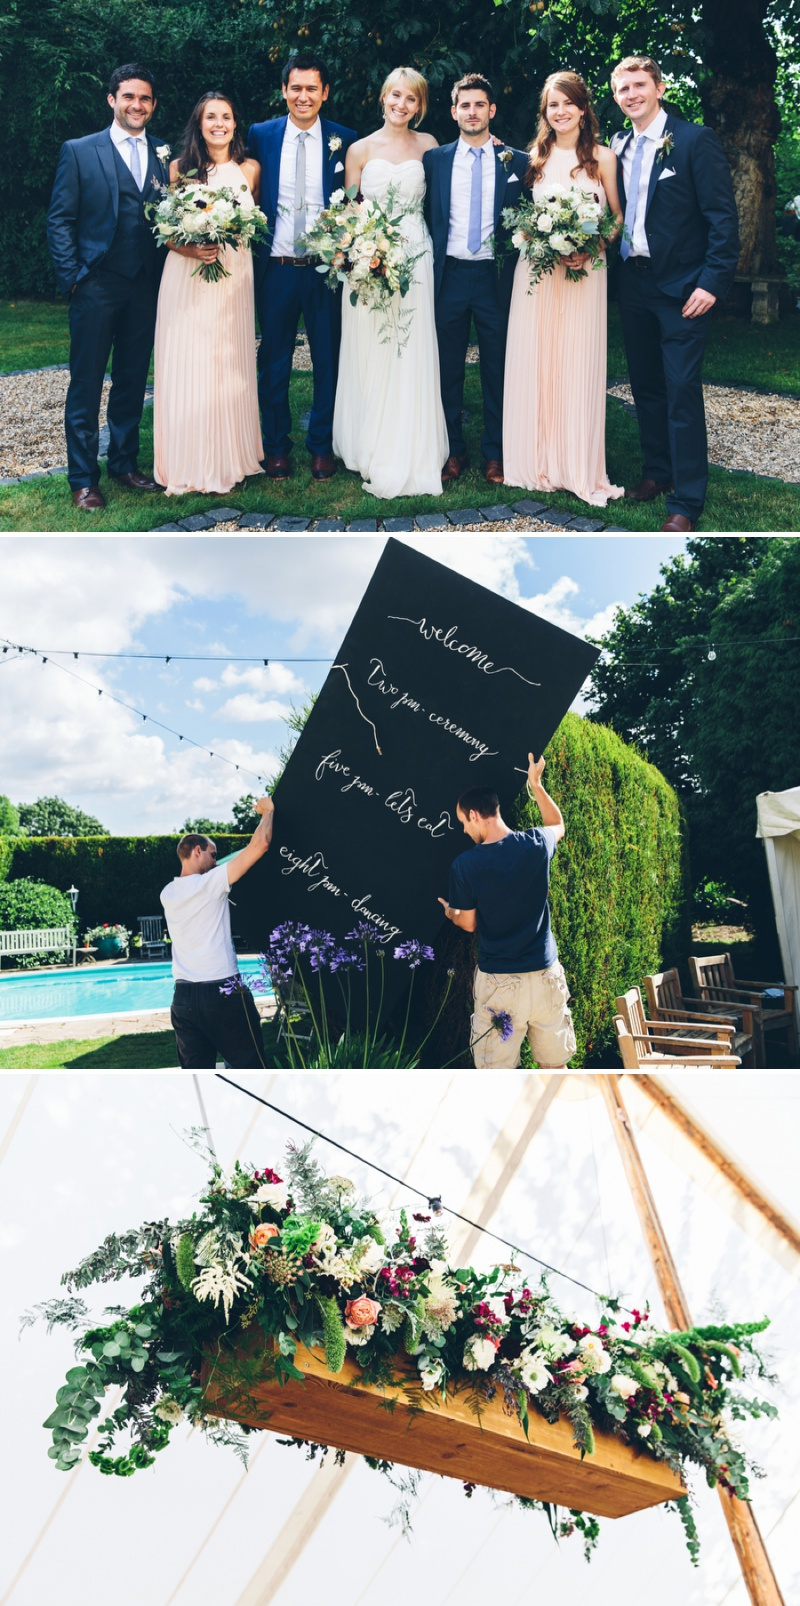 Beautifully Styled Elegant Yet Relaxed Marquee Wedding In Nottinghamshire With Bride In Nanette By Catherine Deane And Groom In Navy Suit By Reiss With A Floral Arch And Flower Box Created By Floraldeco 1 Flowers Galore For An Elegant, Relaxed & Romantic Affair.